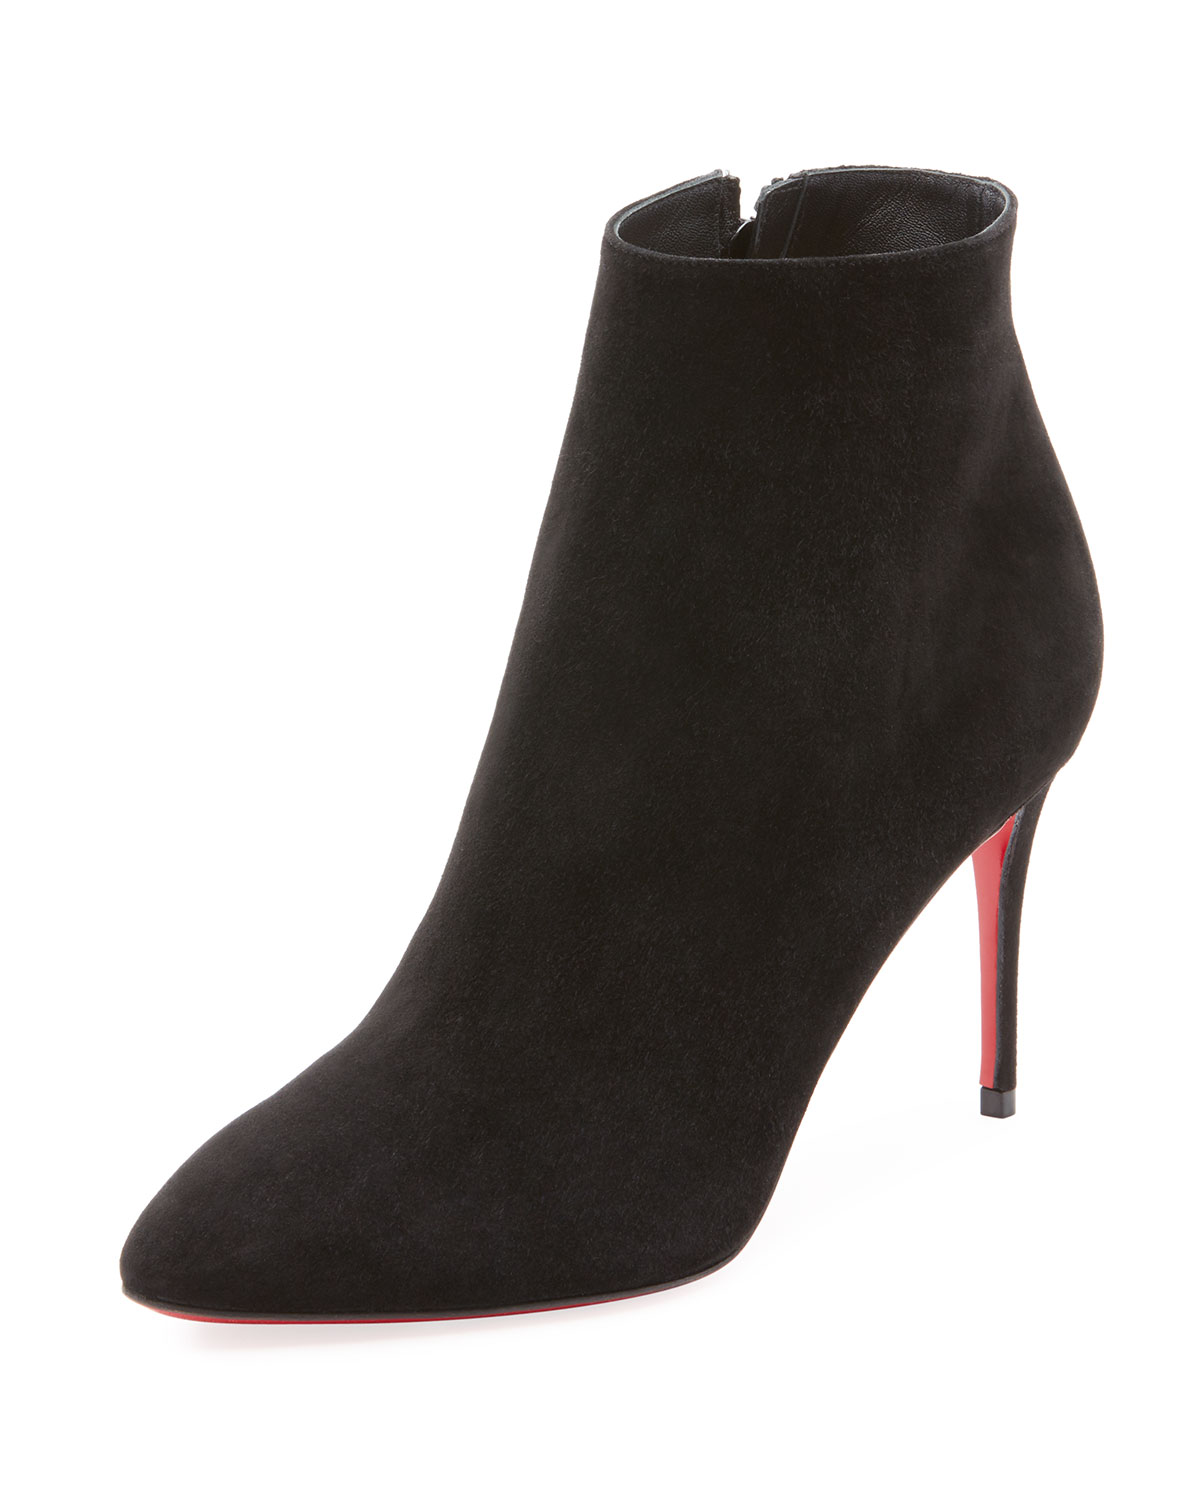 405cd2185d86 Christian Louboutin Eloise Suede Red Sole Booties